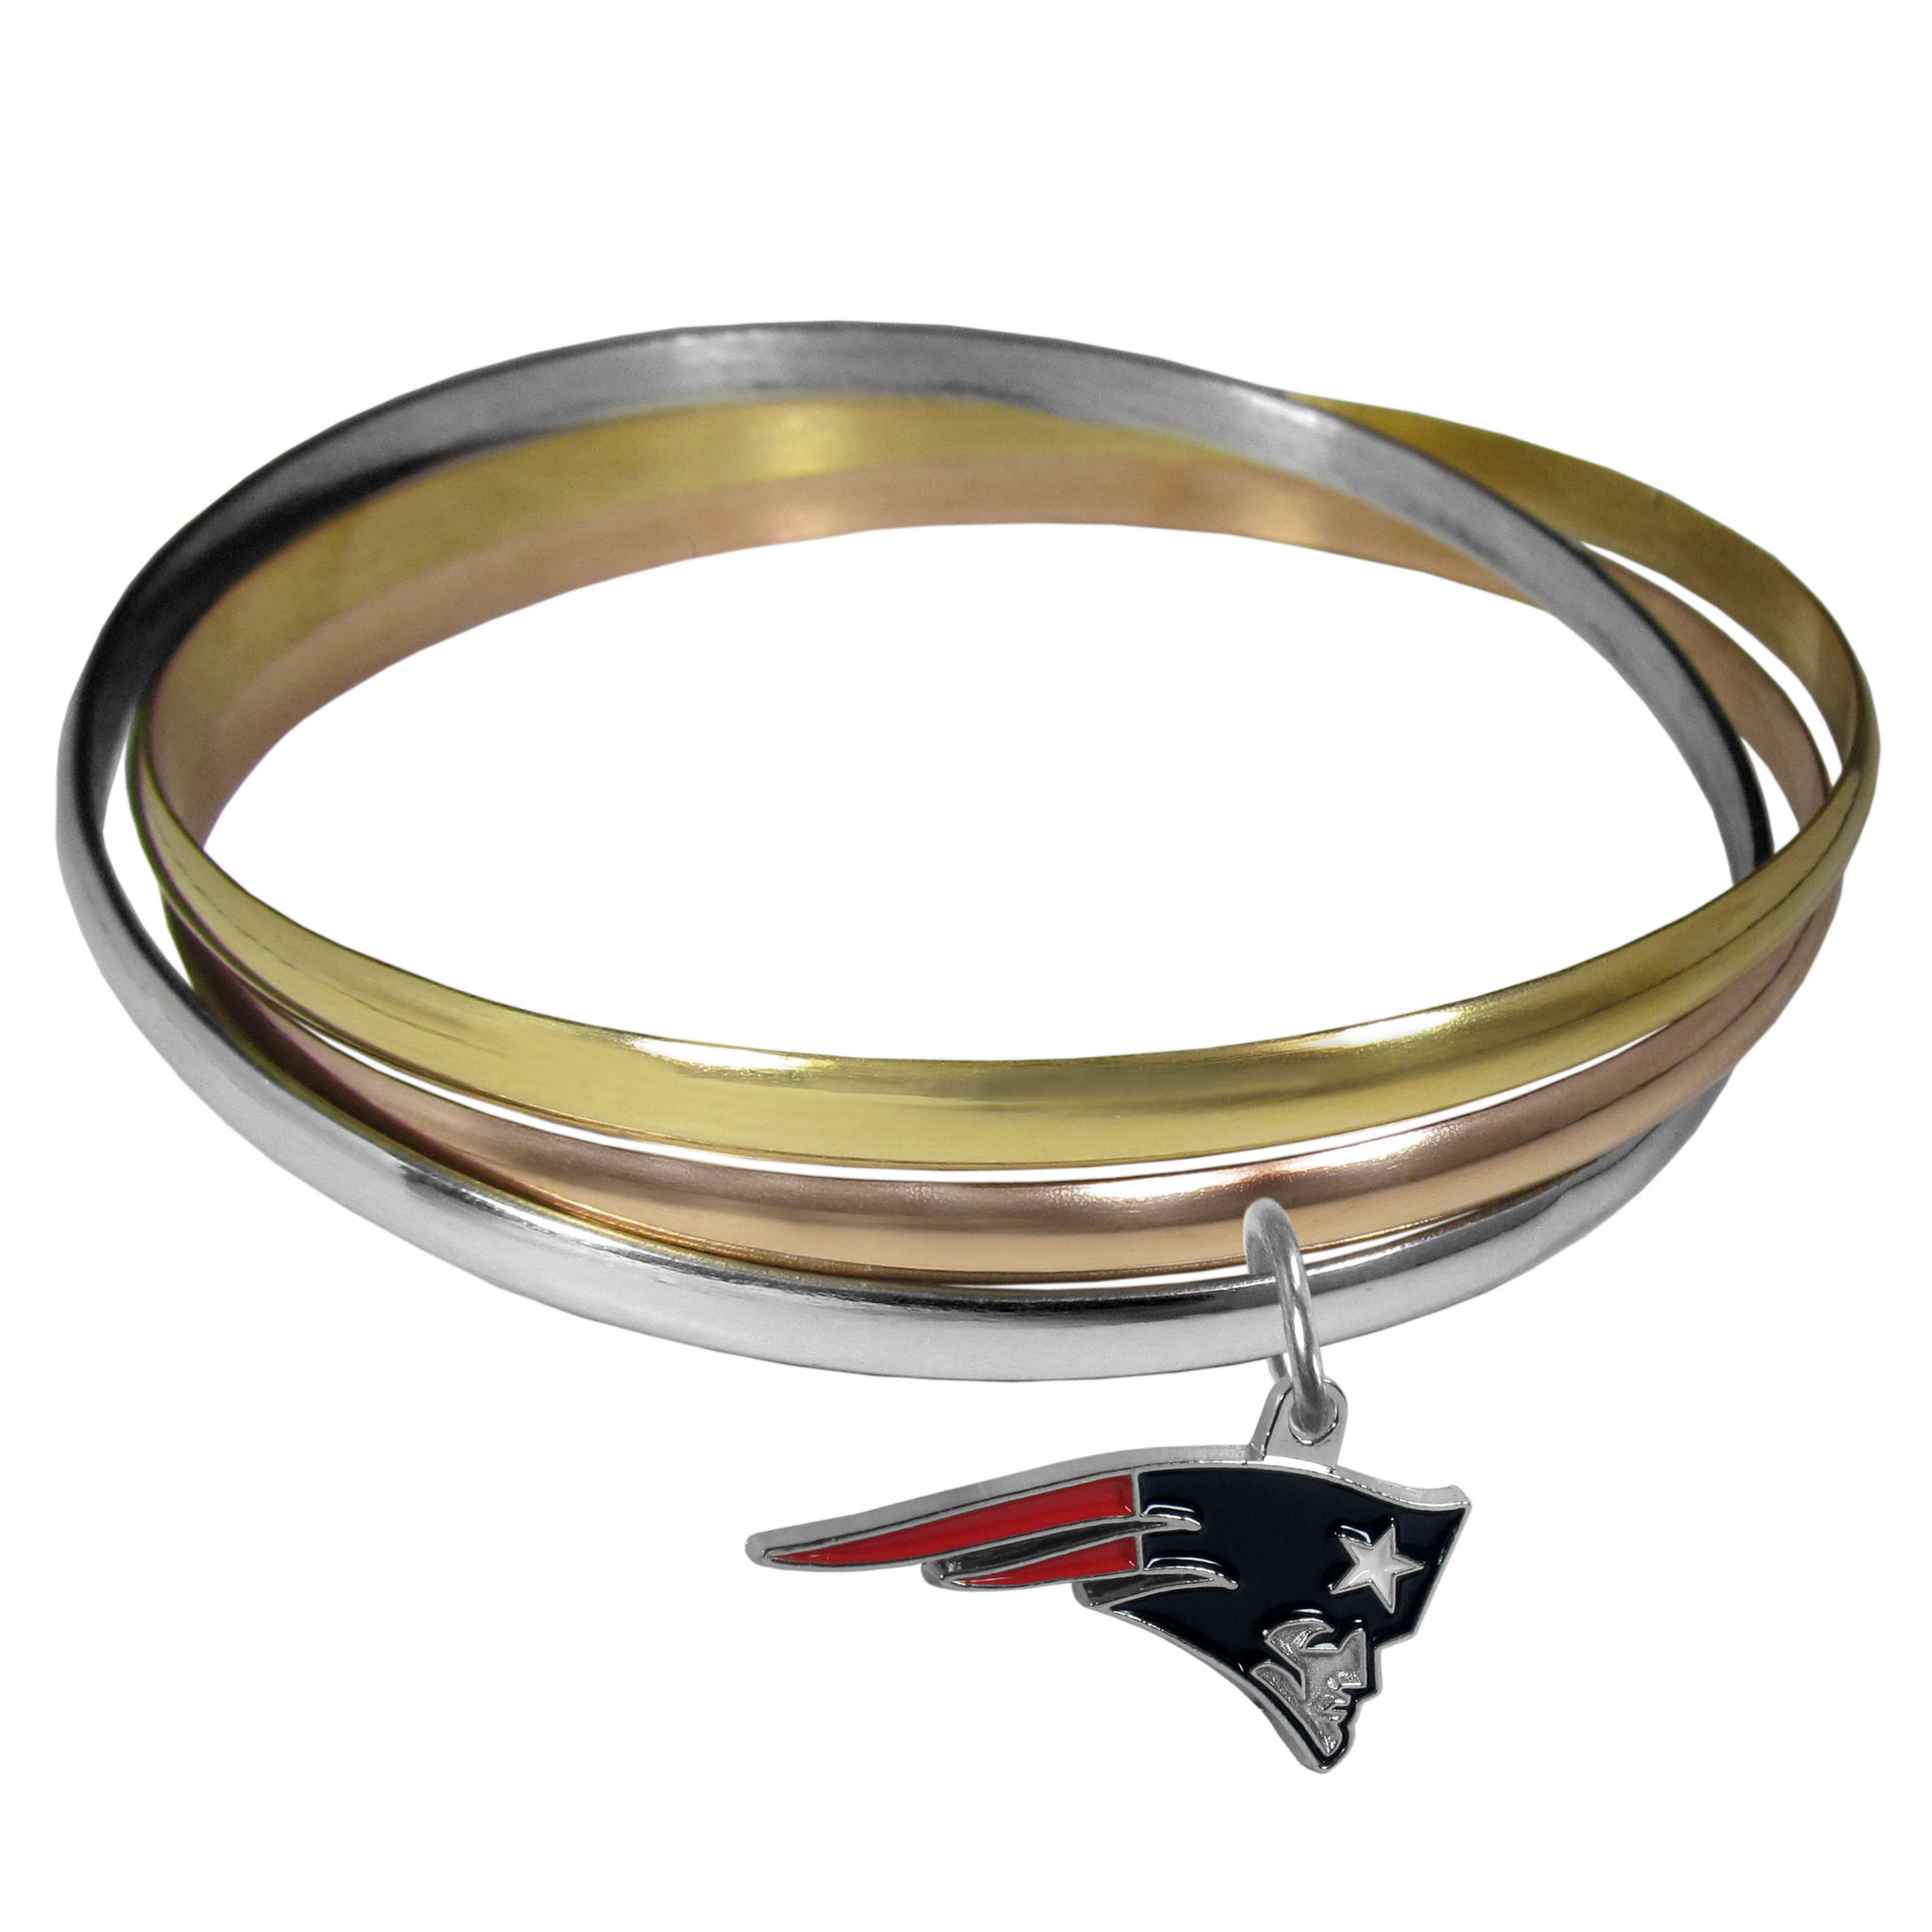 New England Patriots Tri-color Bangle Bracelet - These beautiful bangles come in a interlocking style and feature a fully cast New England Patriots charm with enameled team colors. The bracelet has a silver toned bangle, gold tone bangle and brass toned bangle.